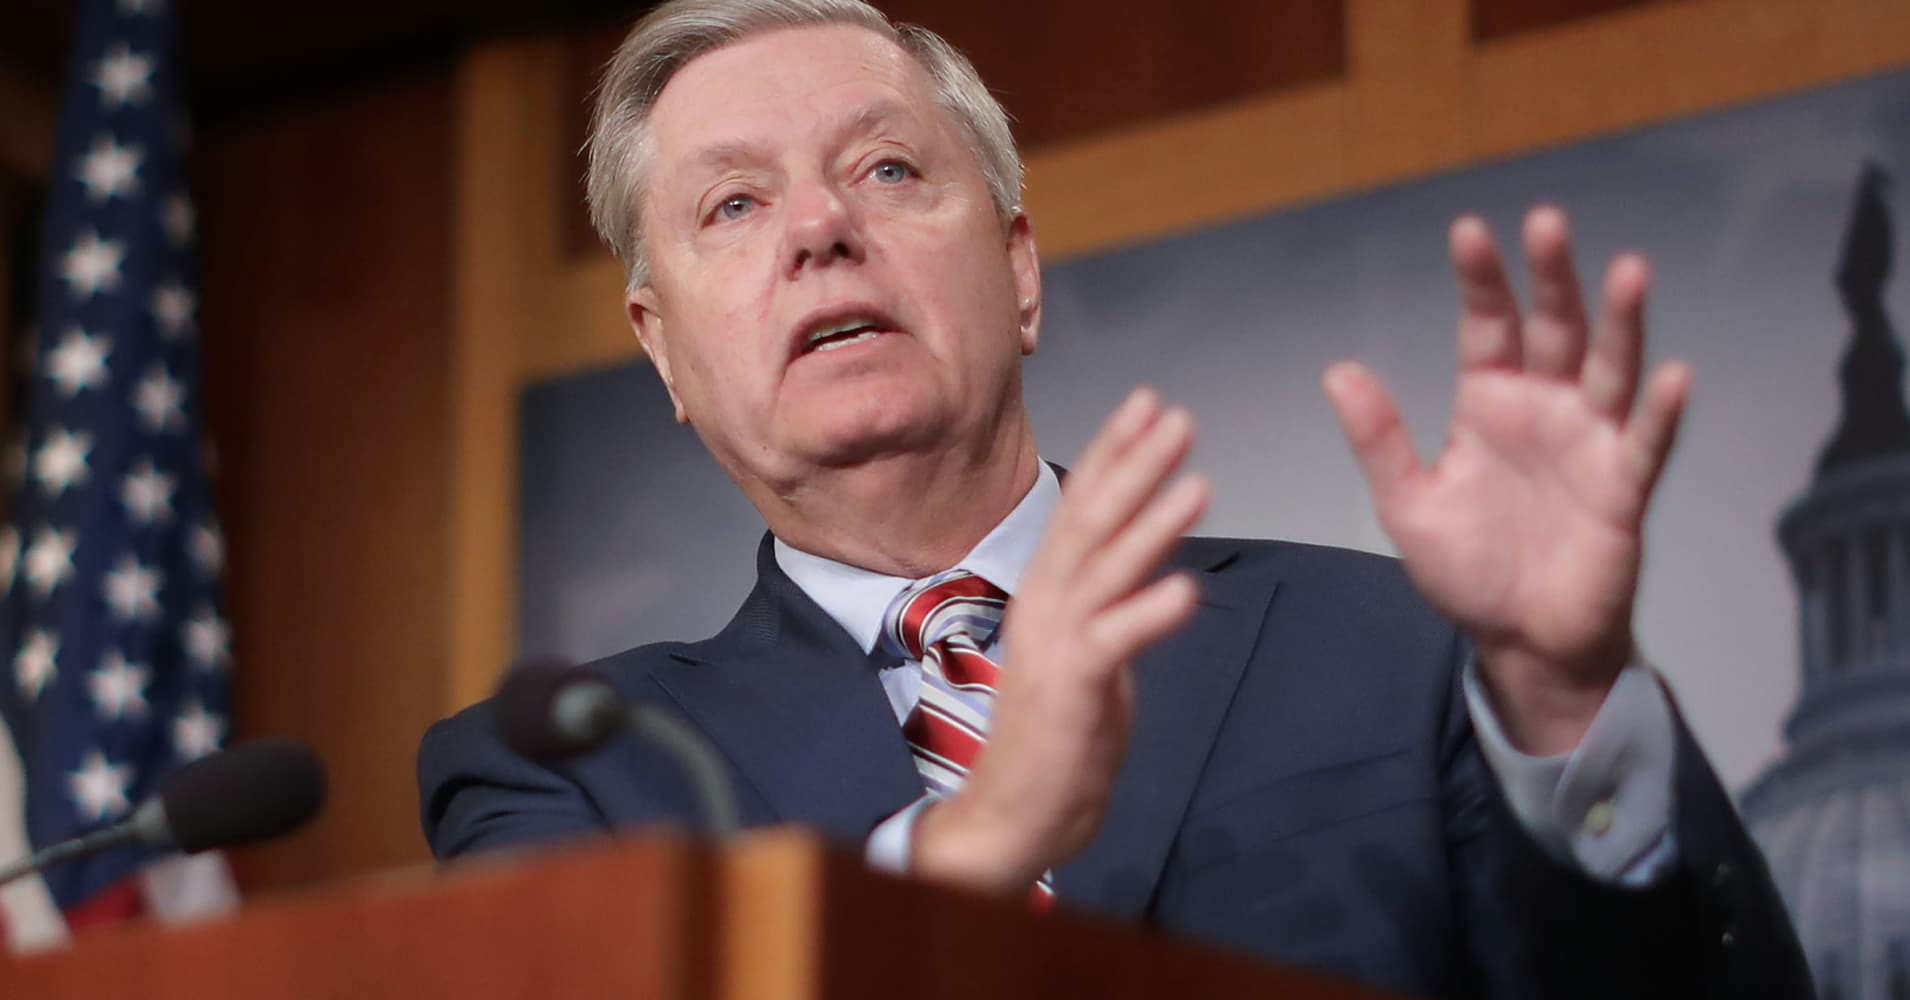 Lindsey Graham: Trump should release his tax returns